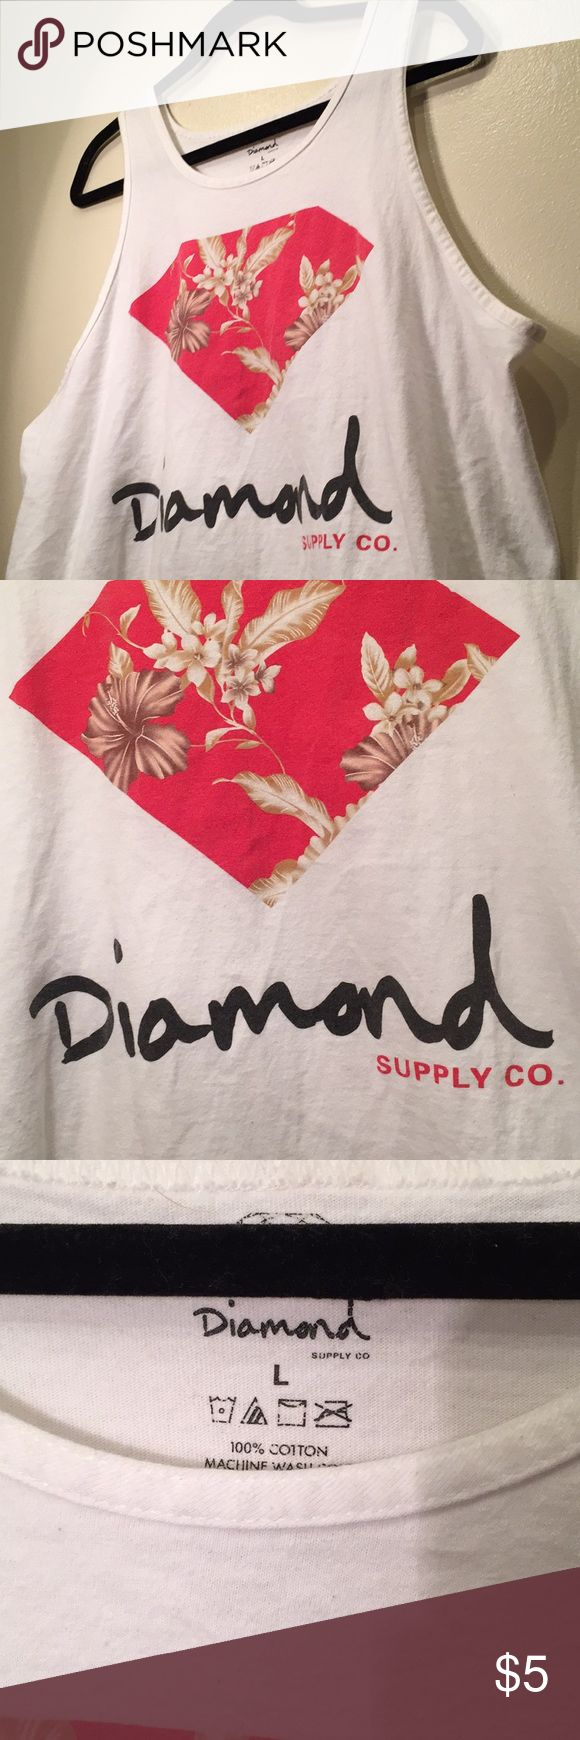 Diamond supply co. Bro tank Large Brand: Diamond supply co. Size:  large Fabric:100% cotton Condition: Slightly worn Price:$10  shipped ✈️ #sizelarge  #mensclothing #clothingforsale #mensfashion Diamond Supply Co. Shirts Tank Tops